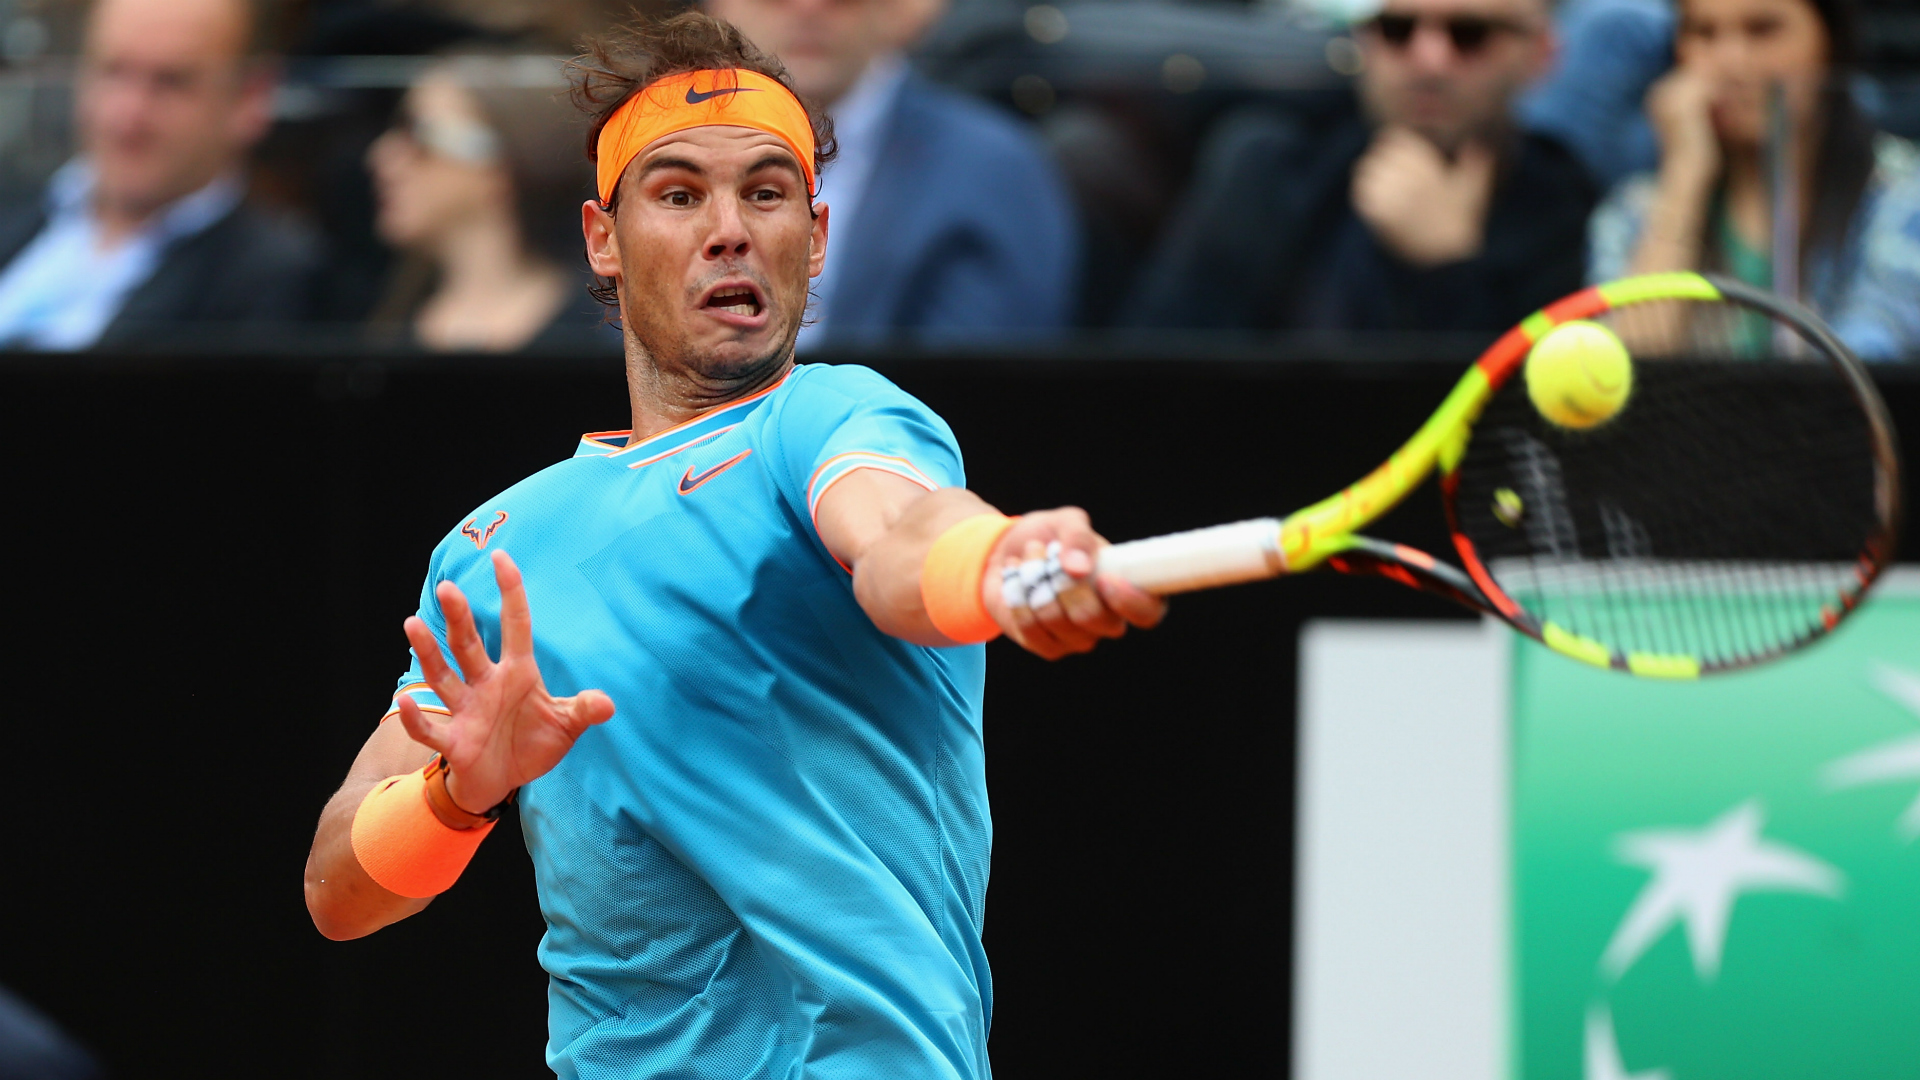 Nadal gets revenge on Tsitsipas to reach Rome final